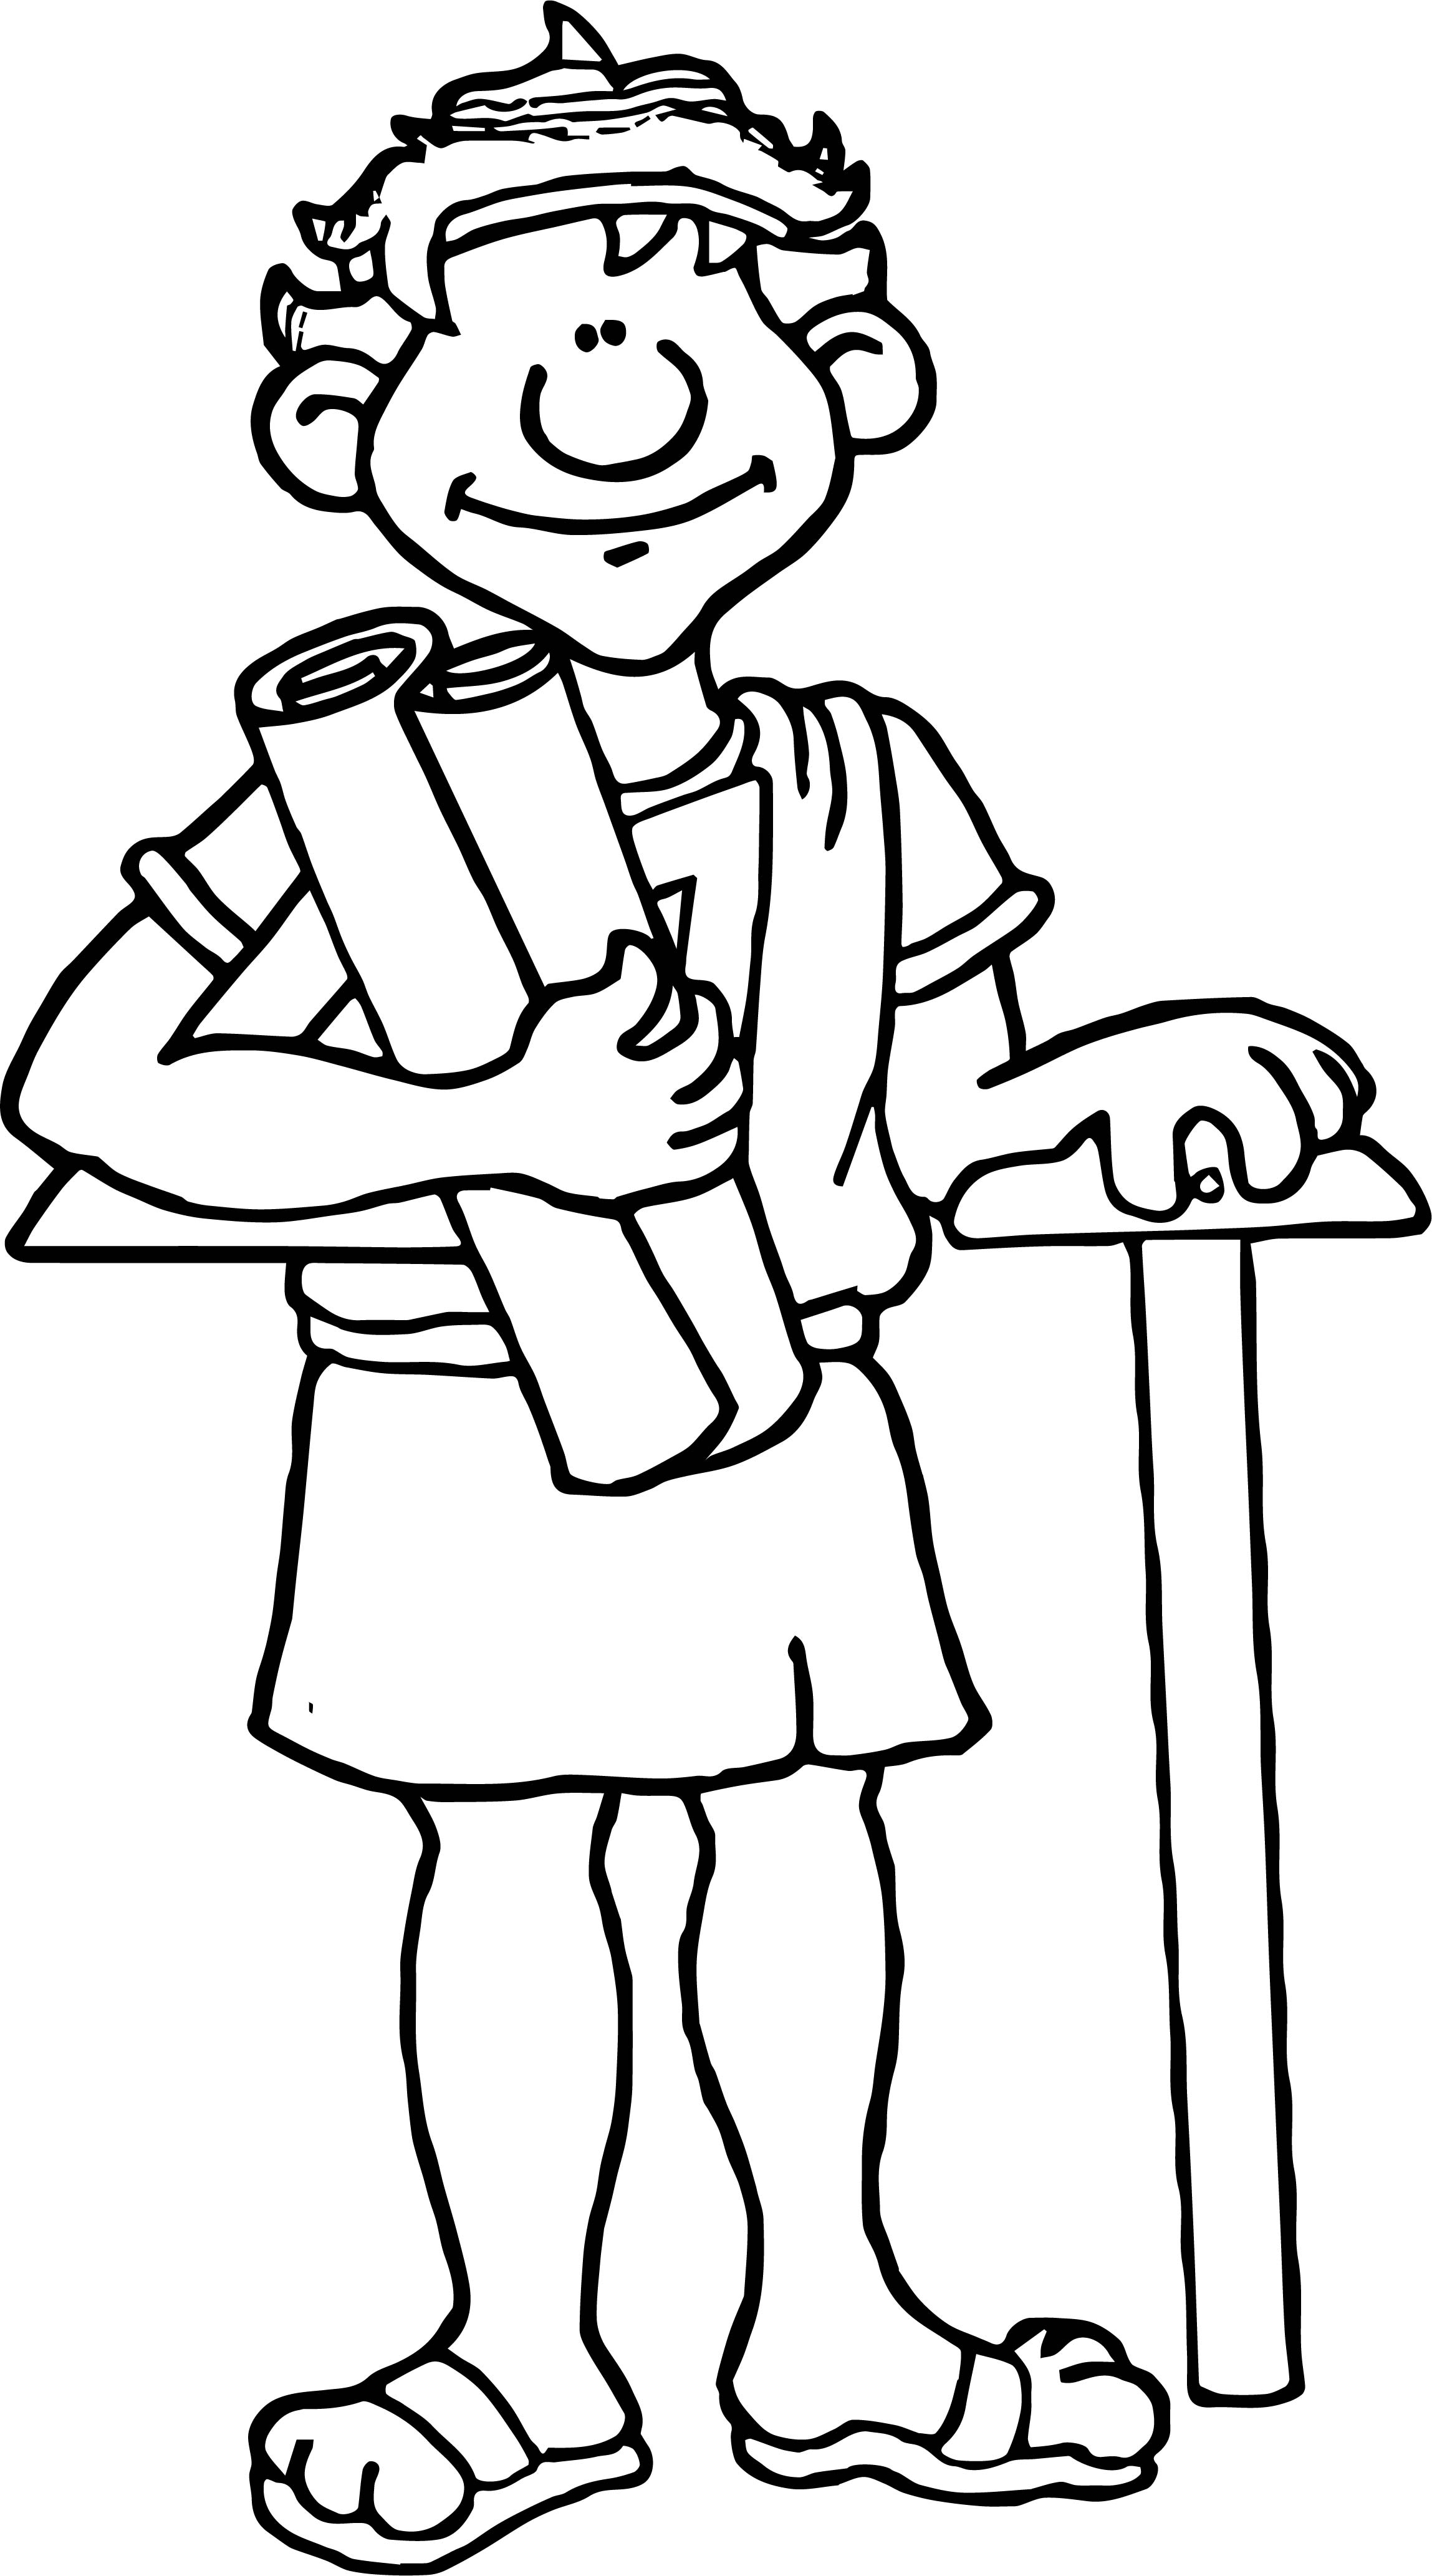 coloring pages of roman buildings - photo#33